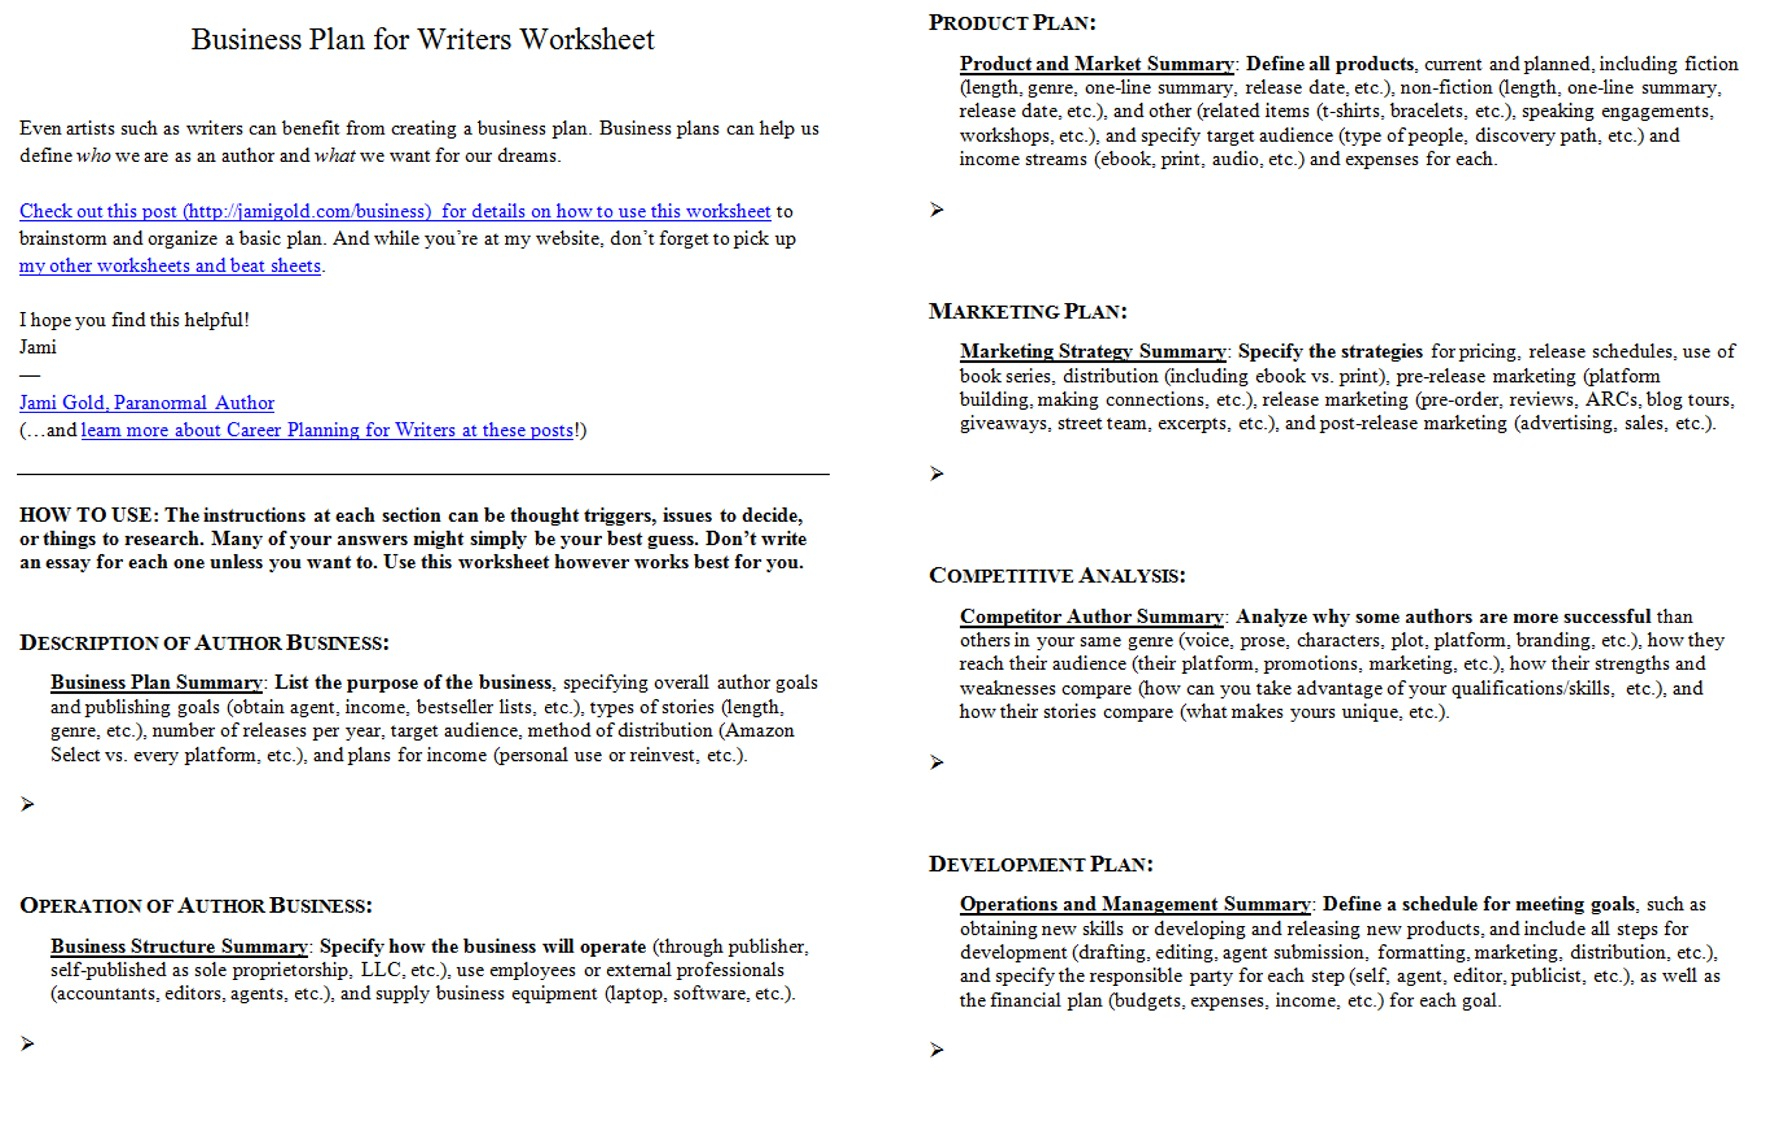 Proatmealus  Surprising Worksheets For Writers  Jami Gold Paranormal Author With Excellent Screen Shot Of Both Pages Of The Business Plan For Writers Worksheet With Lovely Th Grade Geometry Worksheets Also Valentines Day Math Worksheets In Addition Bible Worksheets For Adults And Analogy Worksheet As Well As How To Ungroup Worksheets In Excel Additionally Change Plan Worksheet From Jamigoldcom With Proatmealus  Excellent Worksheets For Writers  Jami Gold Paranormal Author With Lovely Screen Shot Of Both Pages Of The Business Plan For Writers Worksheet And Surprising Th Grade Geometry Worksheets Also Valentines Day Math Worksheets In Addition Bible Worksheets For Adults From Jamigoldcom